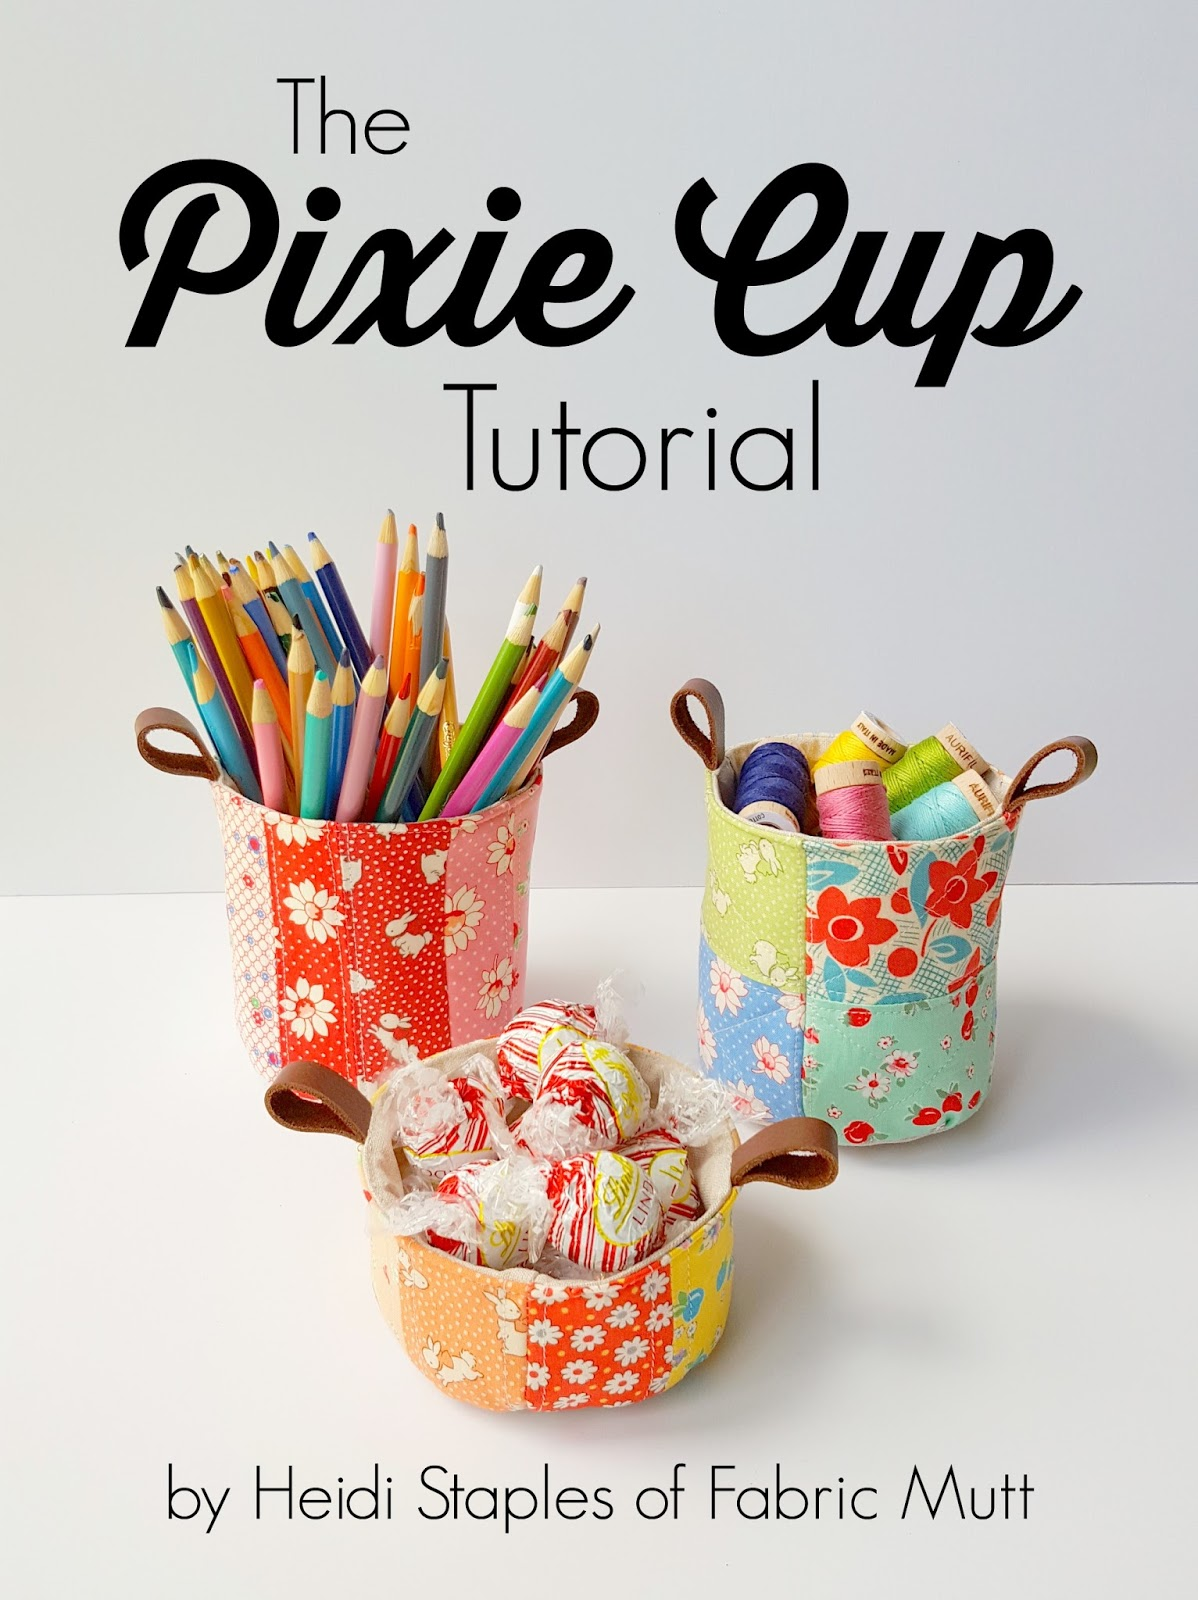 the-pixie-cup-tutorial